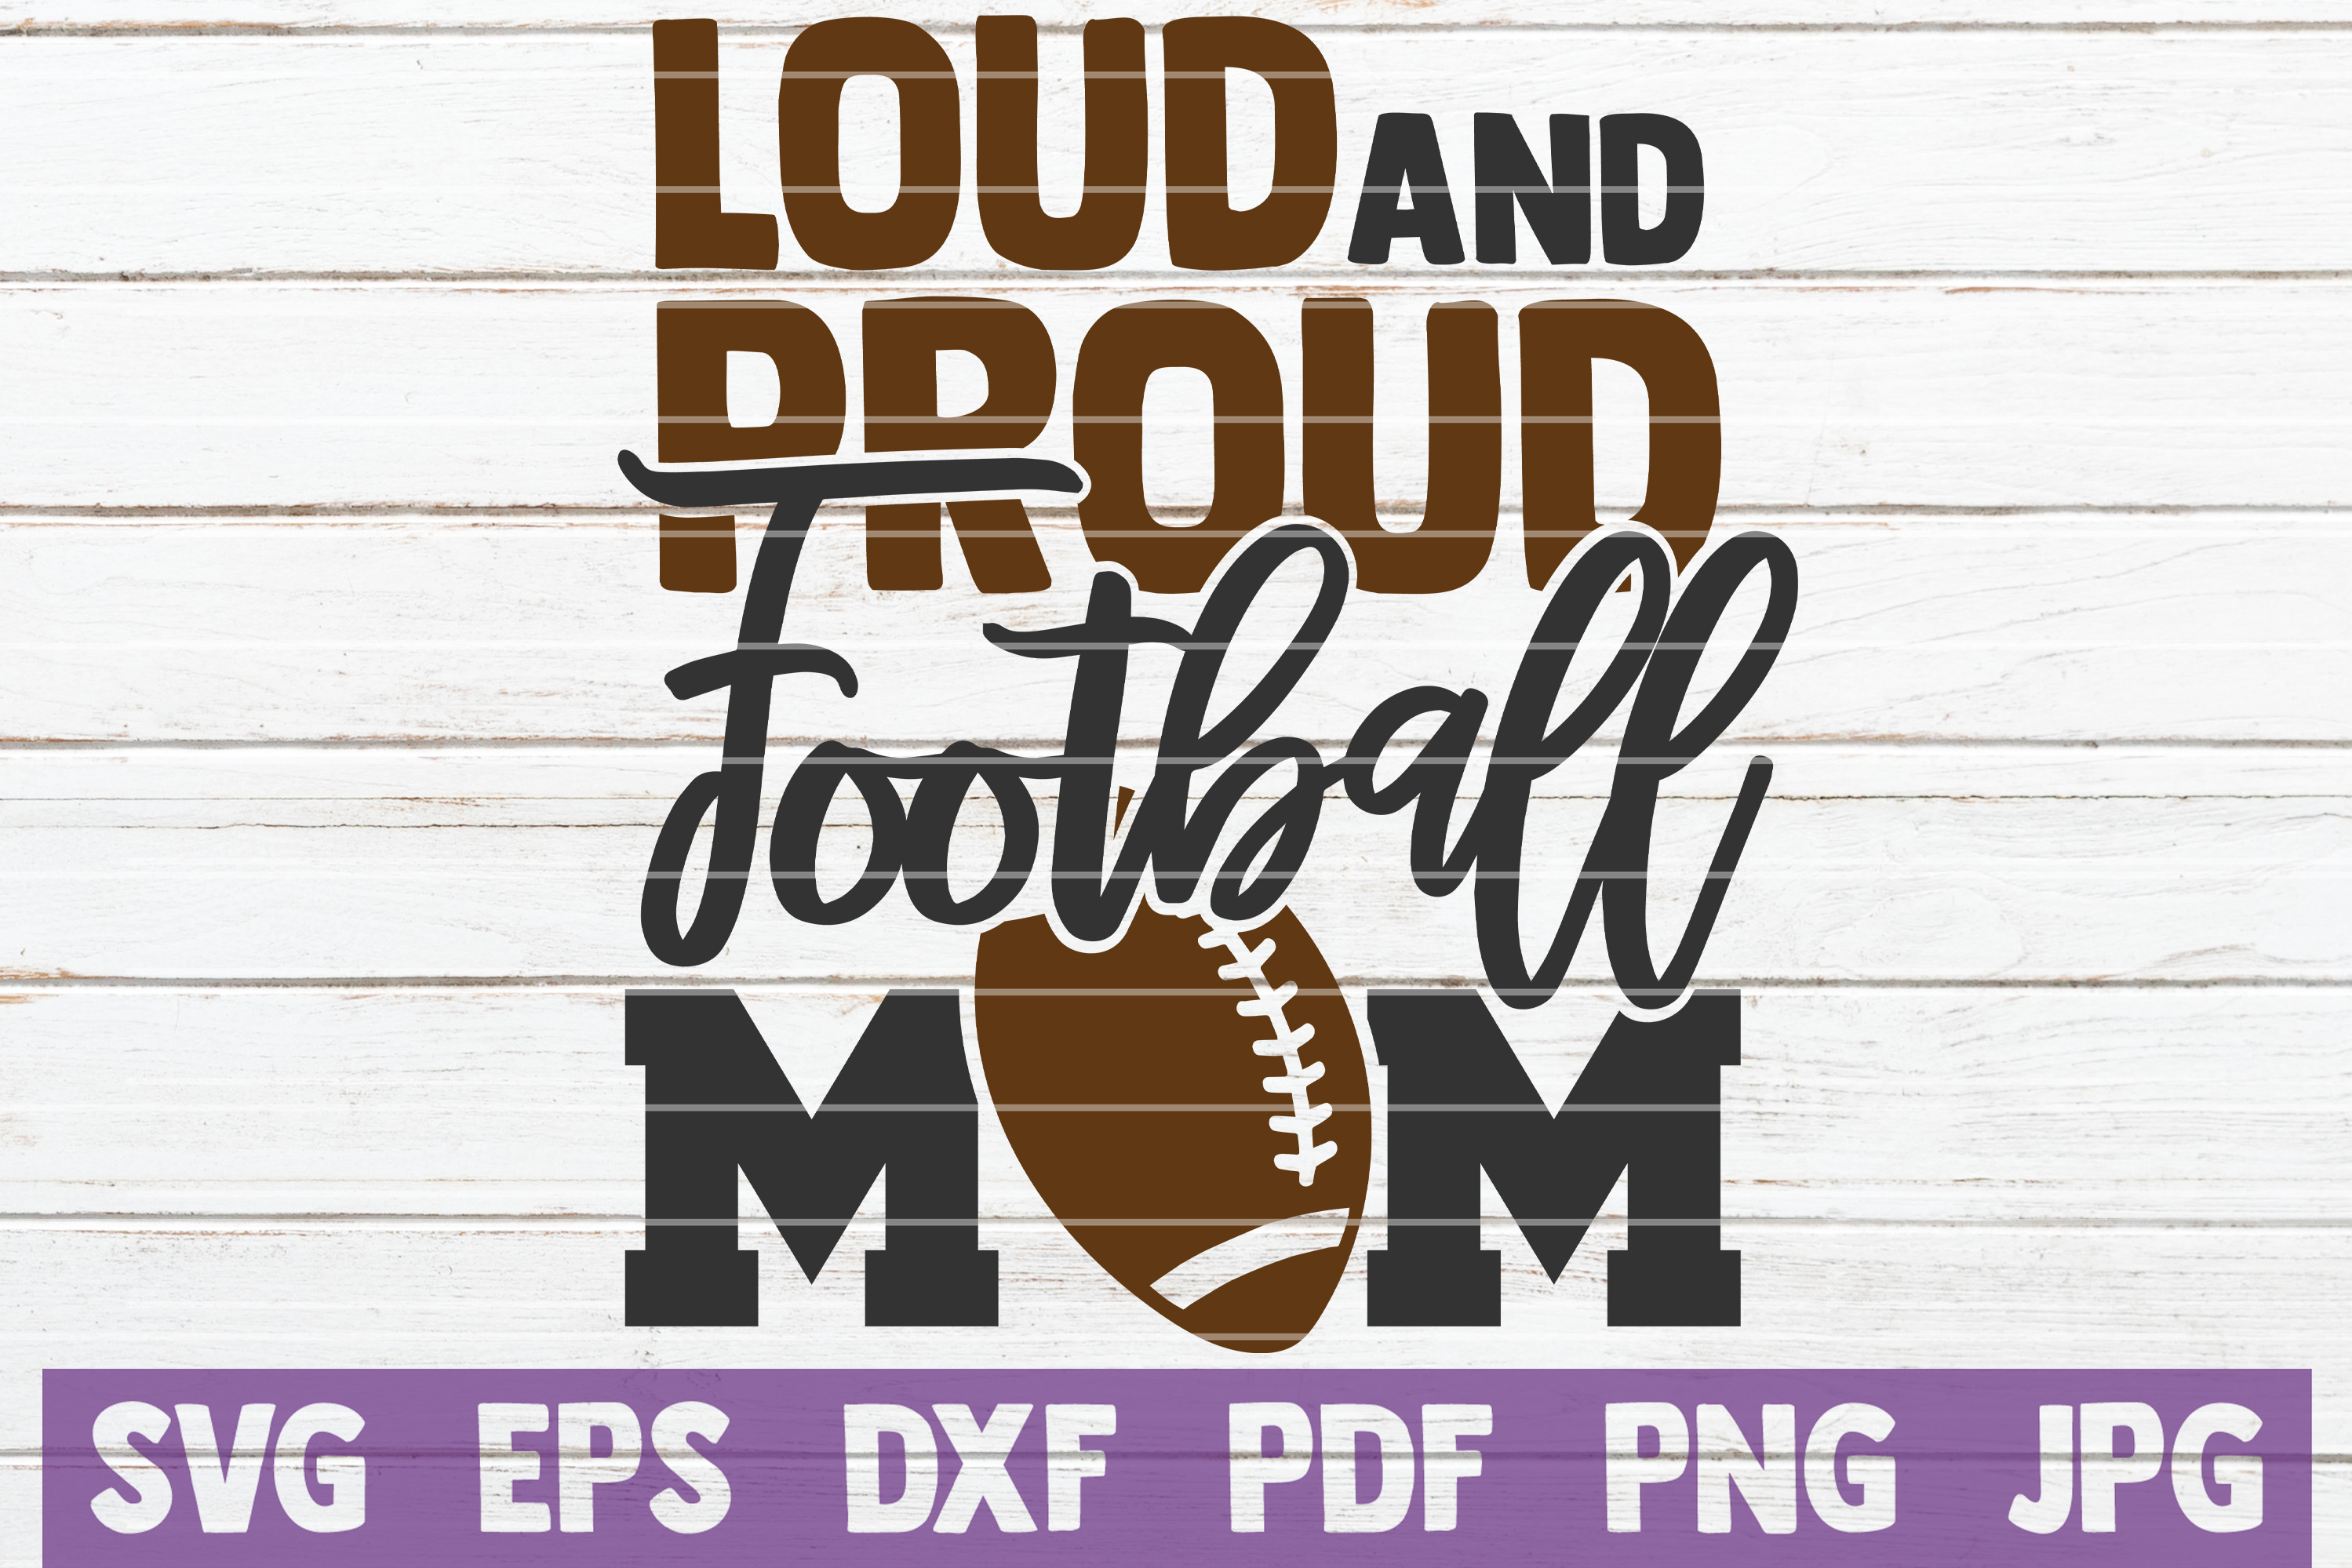 Download Free Loud And Proud Football Mom Svg Cut File Graphic By Mintymarshmallows Creative Fabrica for Cricut Explore, Silhouette and other cutting machines.